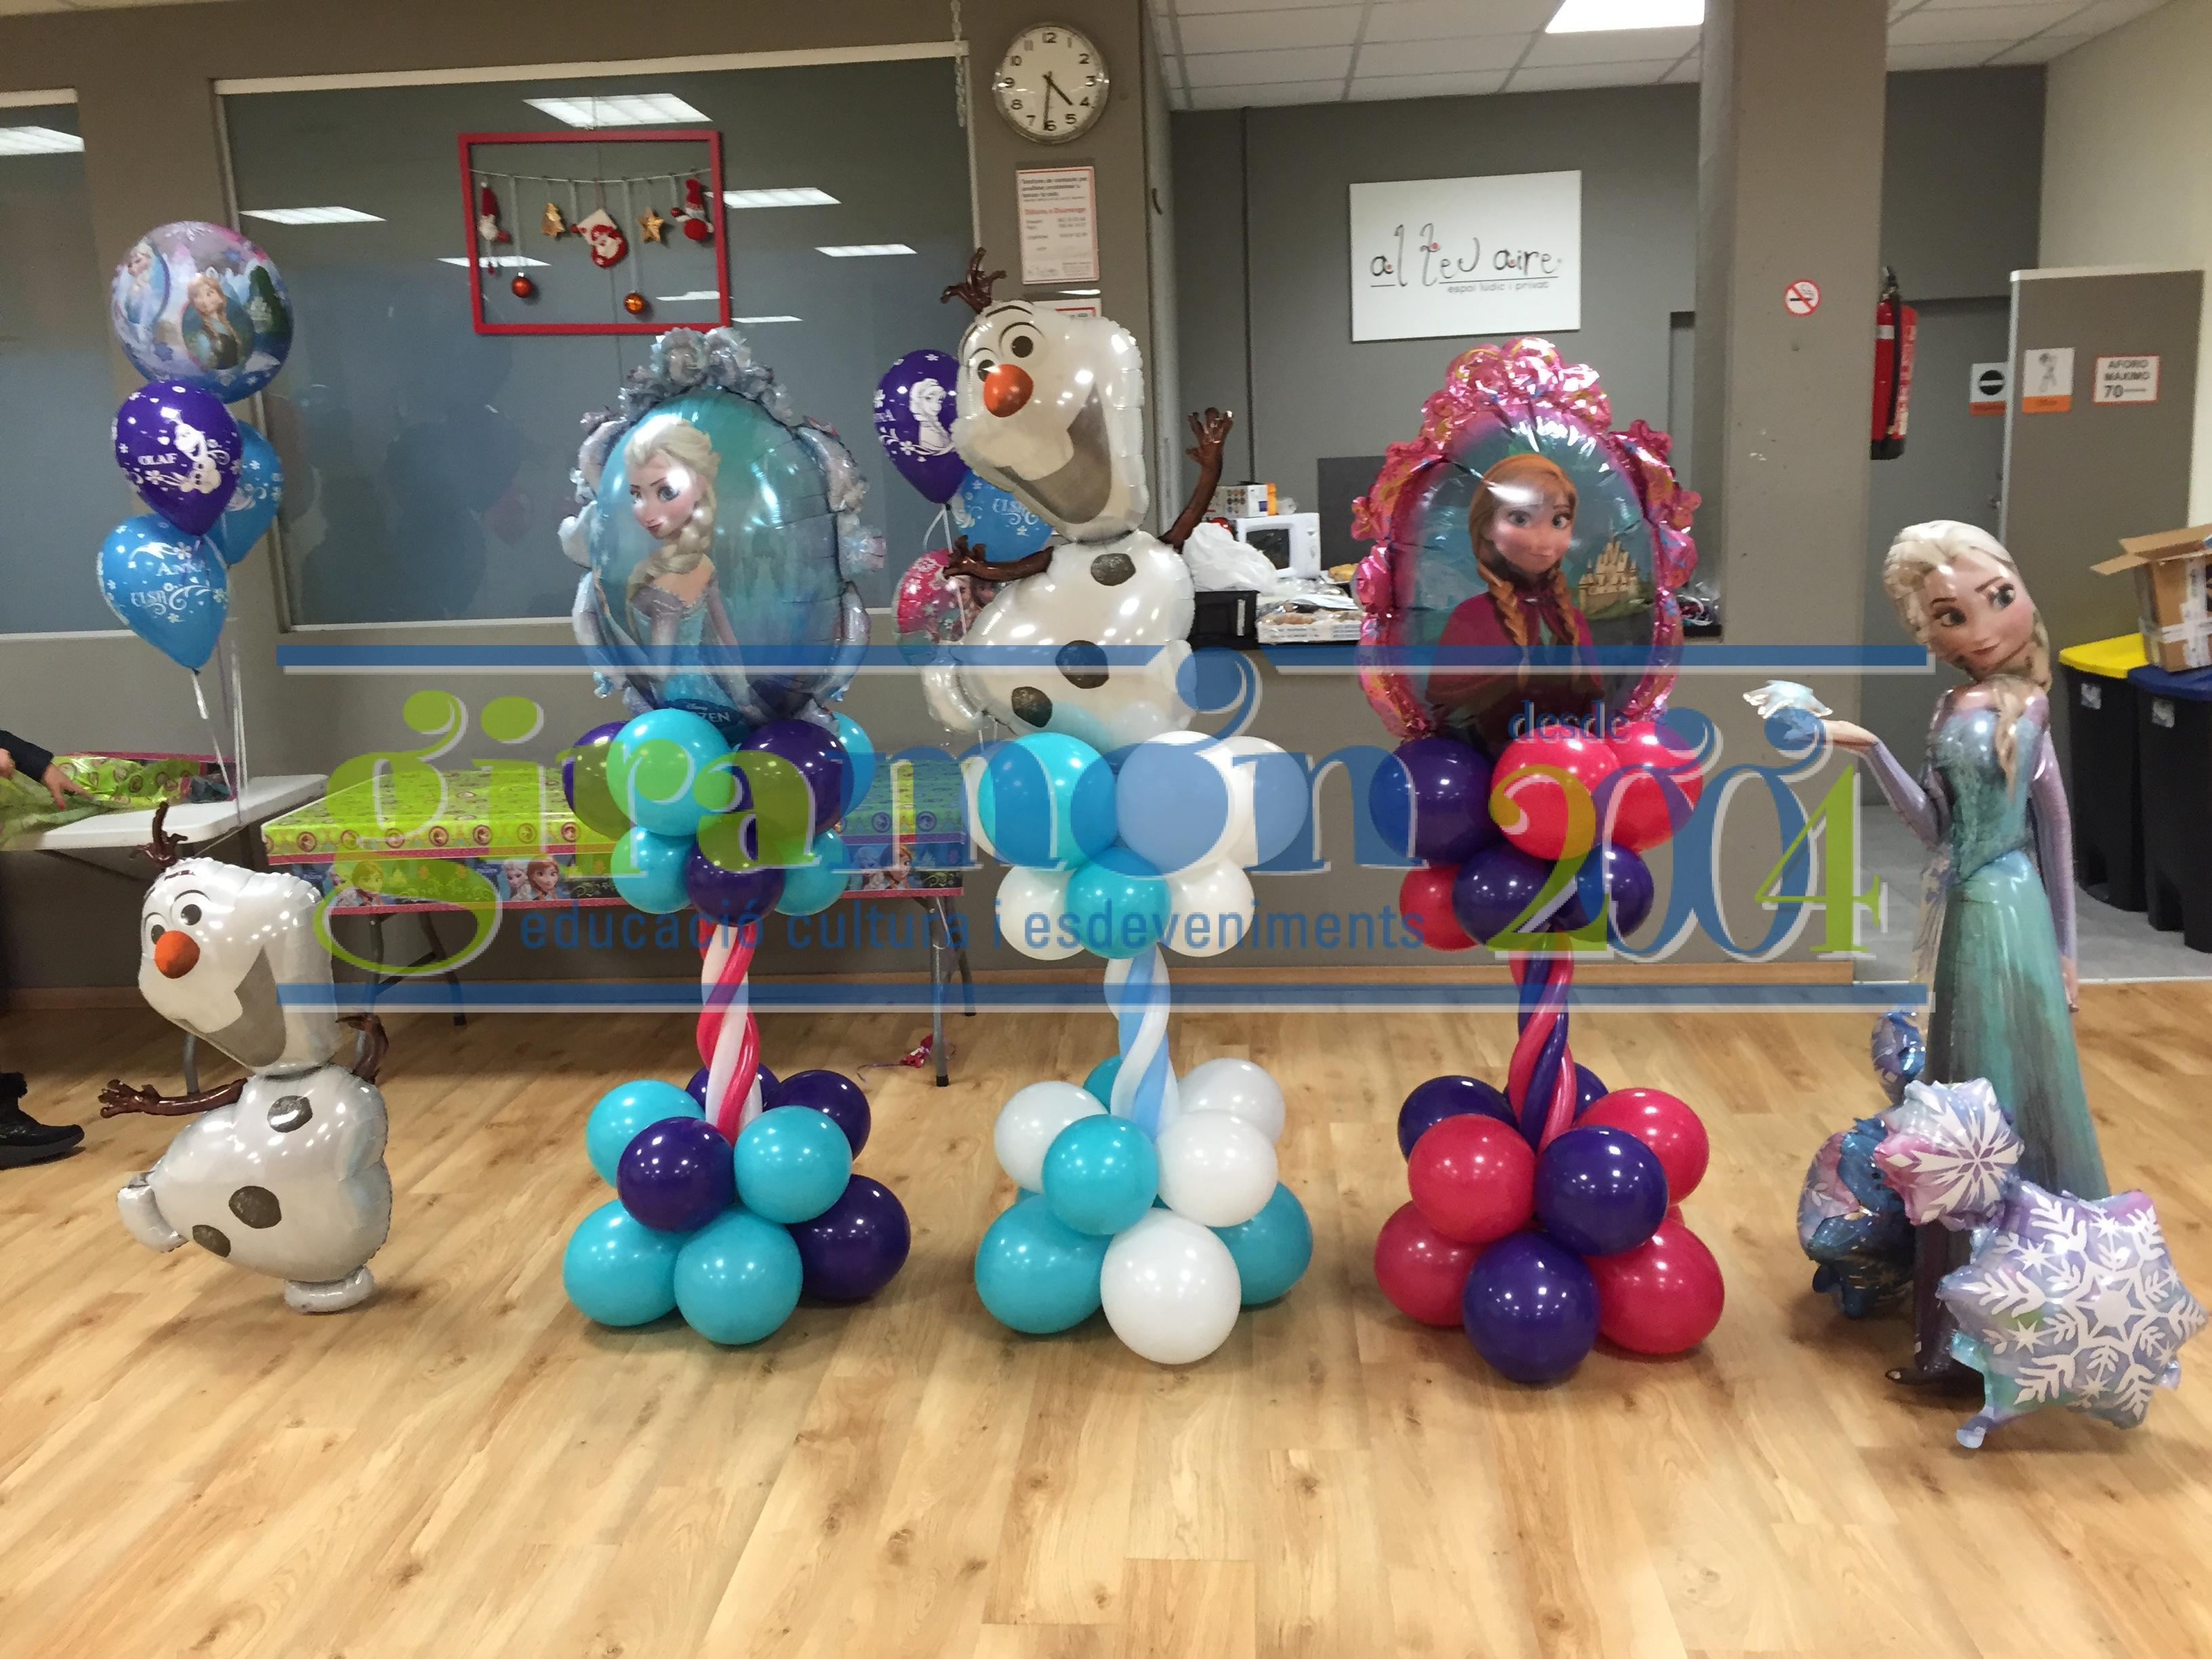 Imagenes de decoracion con globos de frozen for Figuras de decoracion